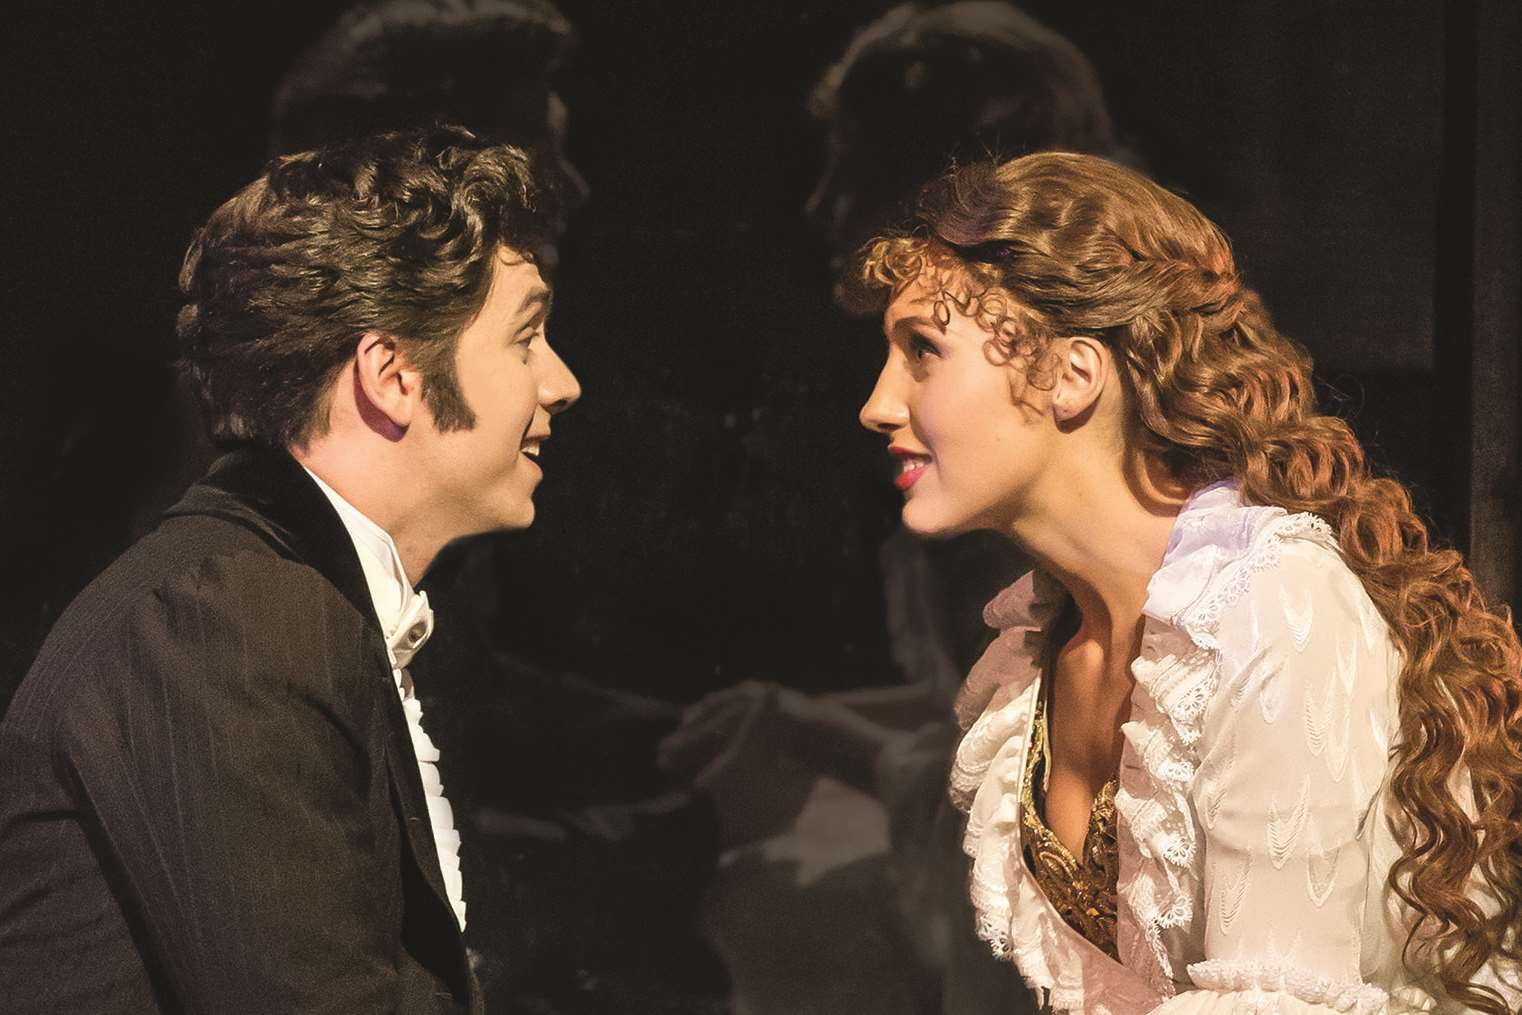 Nadim Namaan with Celinde Schoenmaker in the West End production of The Phantom of the Opera Picture: Johan Persson